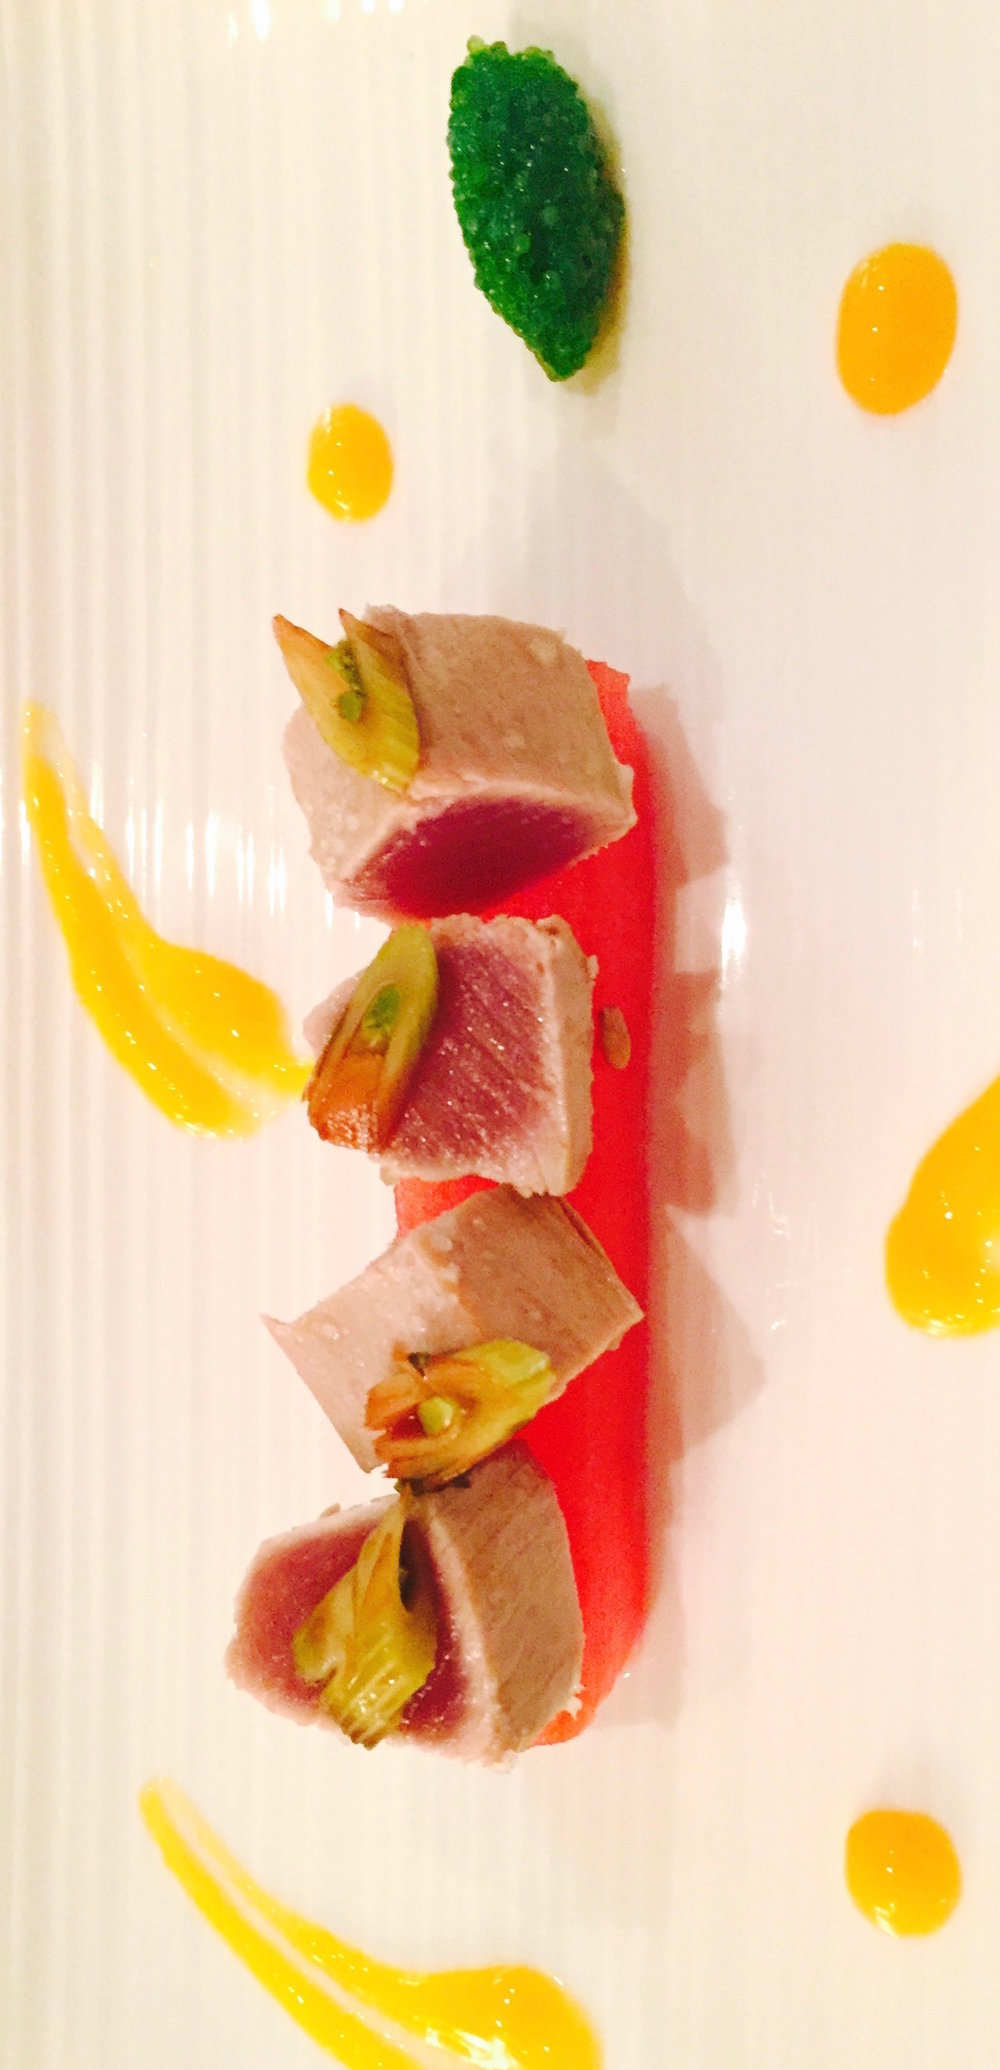 TUNA AND SOUS VIDE WATERMELON WITH WASABI CAVIAR